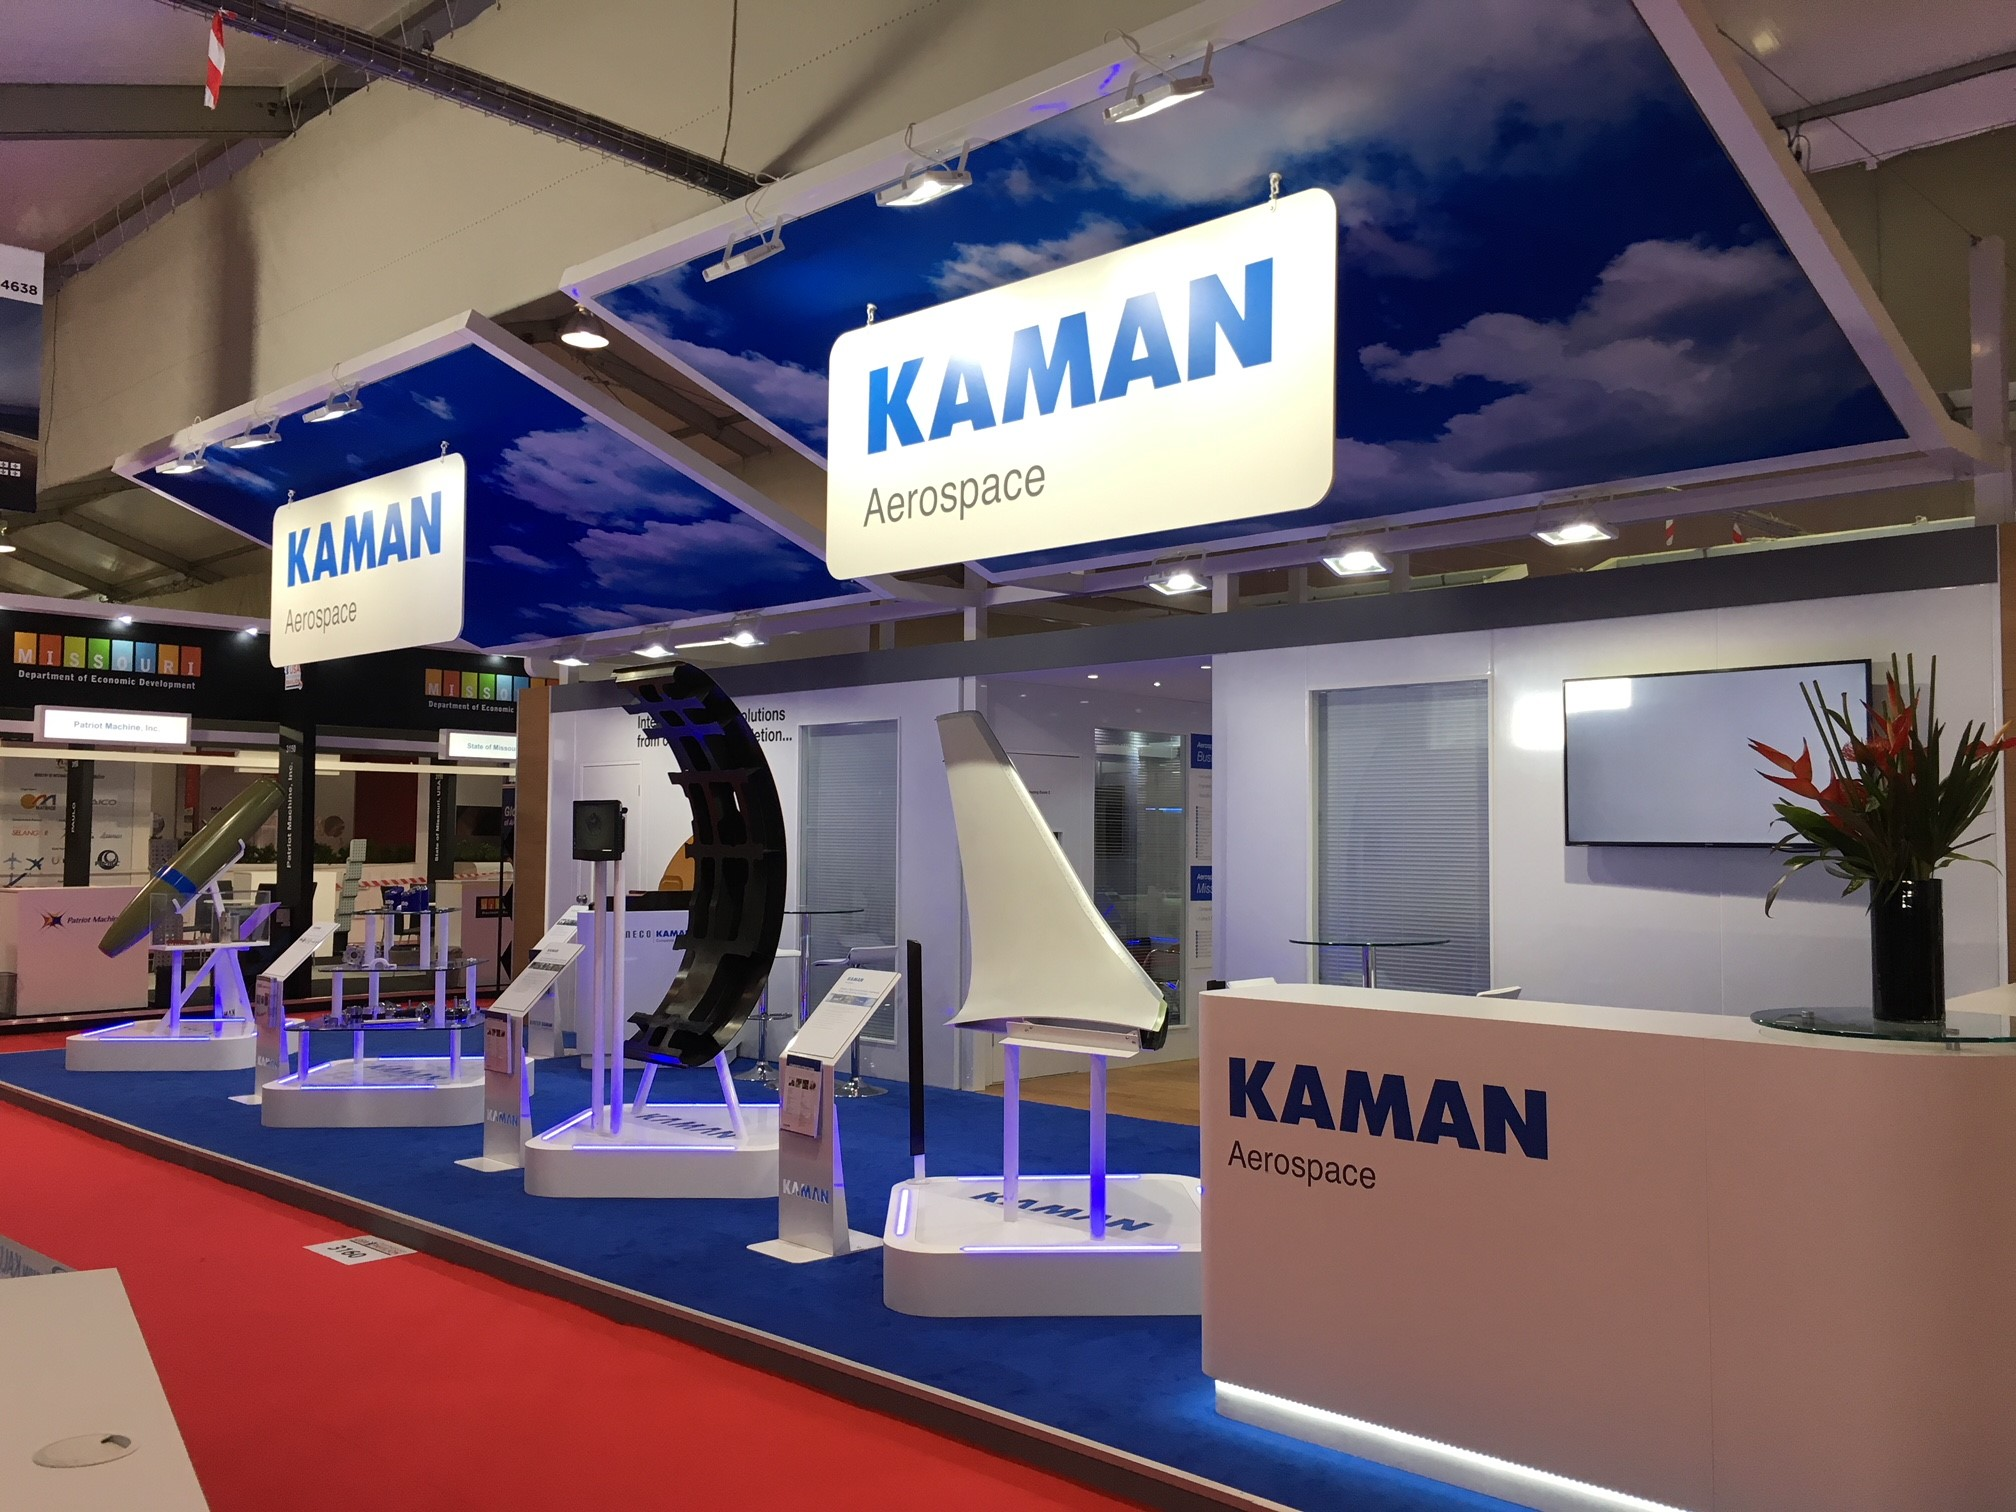 Kaman Exhibition Stand FAS 6.jpg